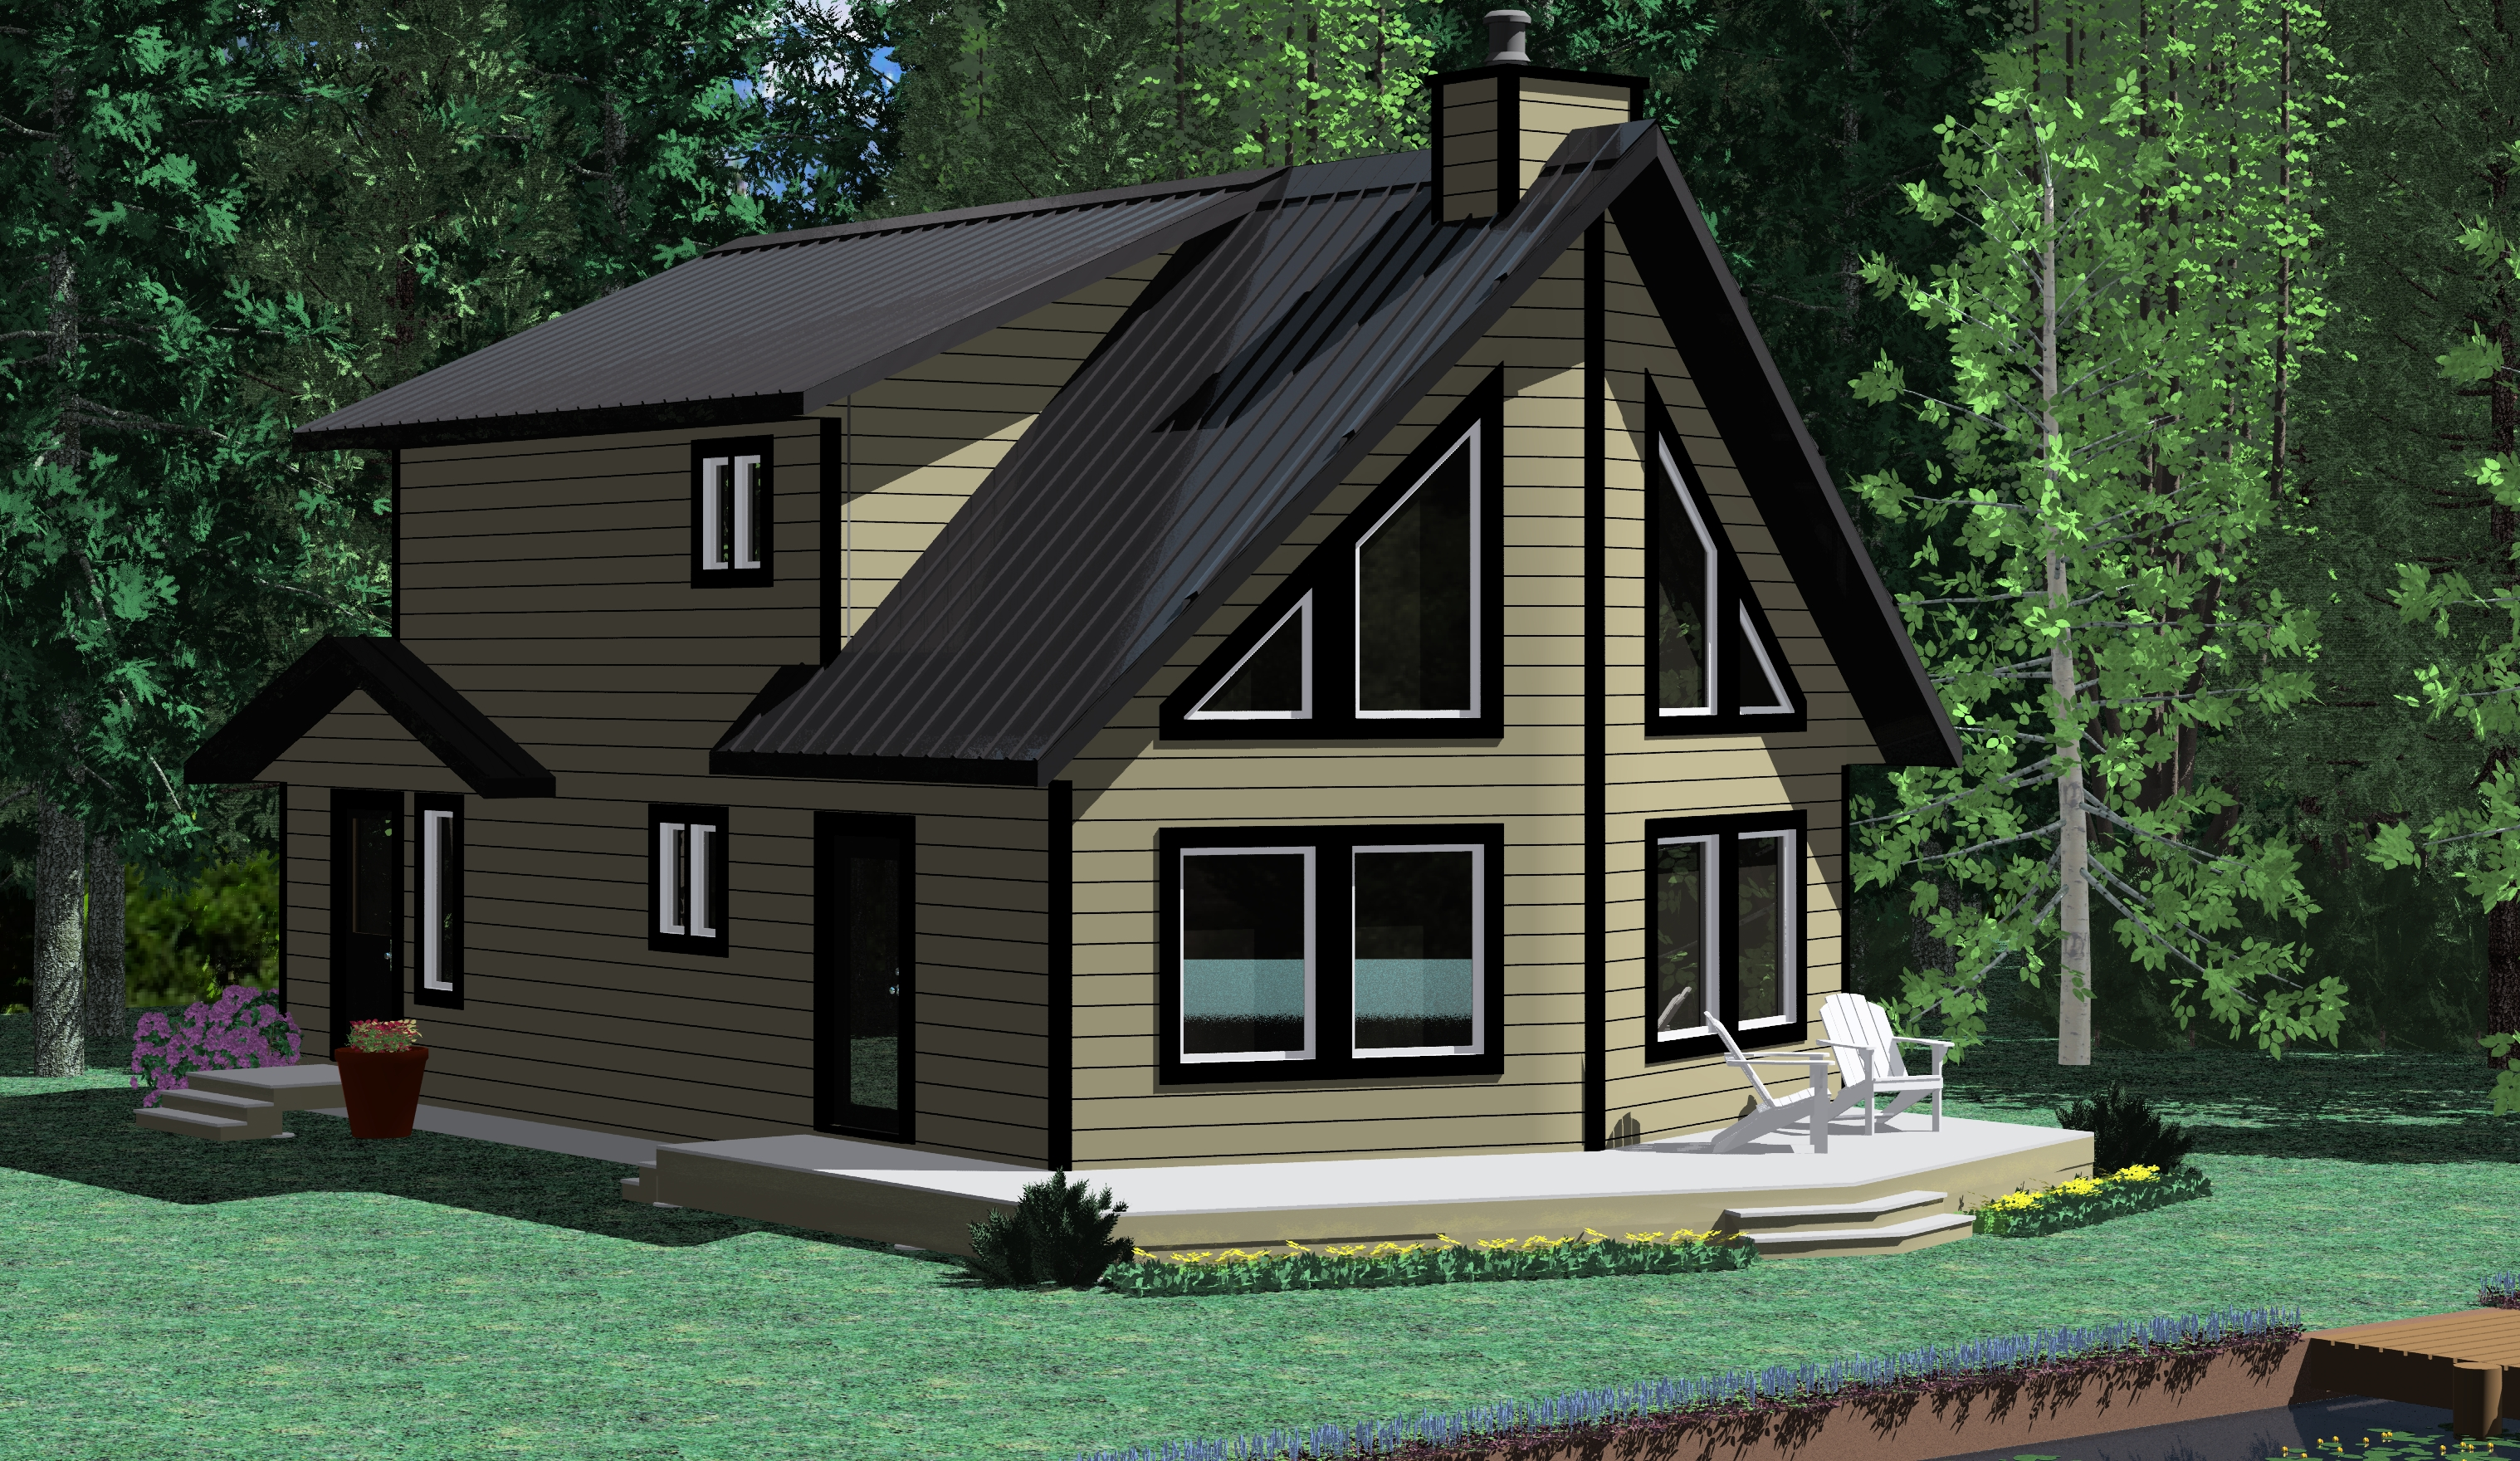 The skeena prefab cabin and cottage plans winton homes for Modular cabins and cottages